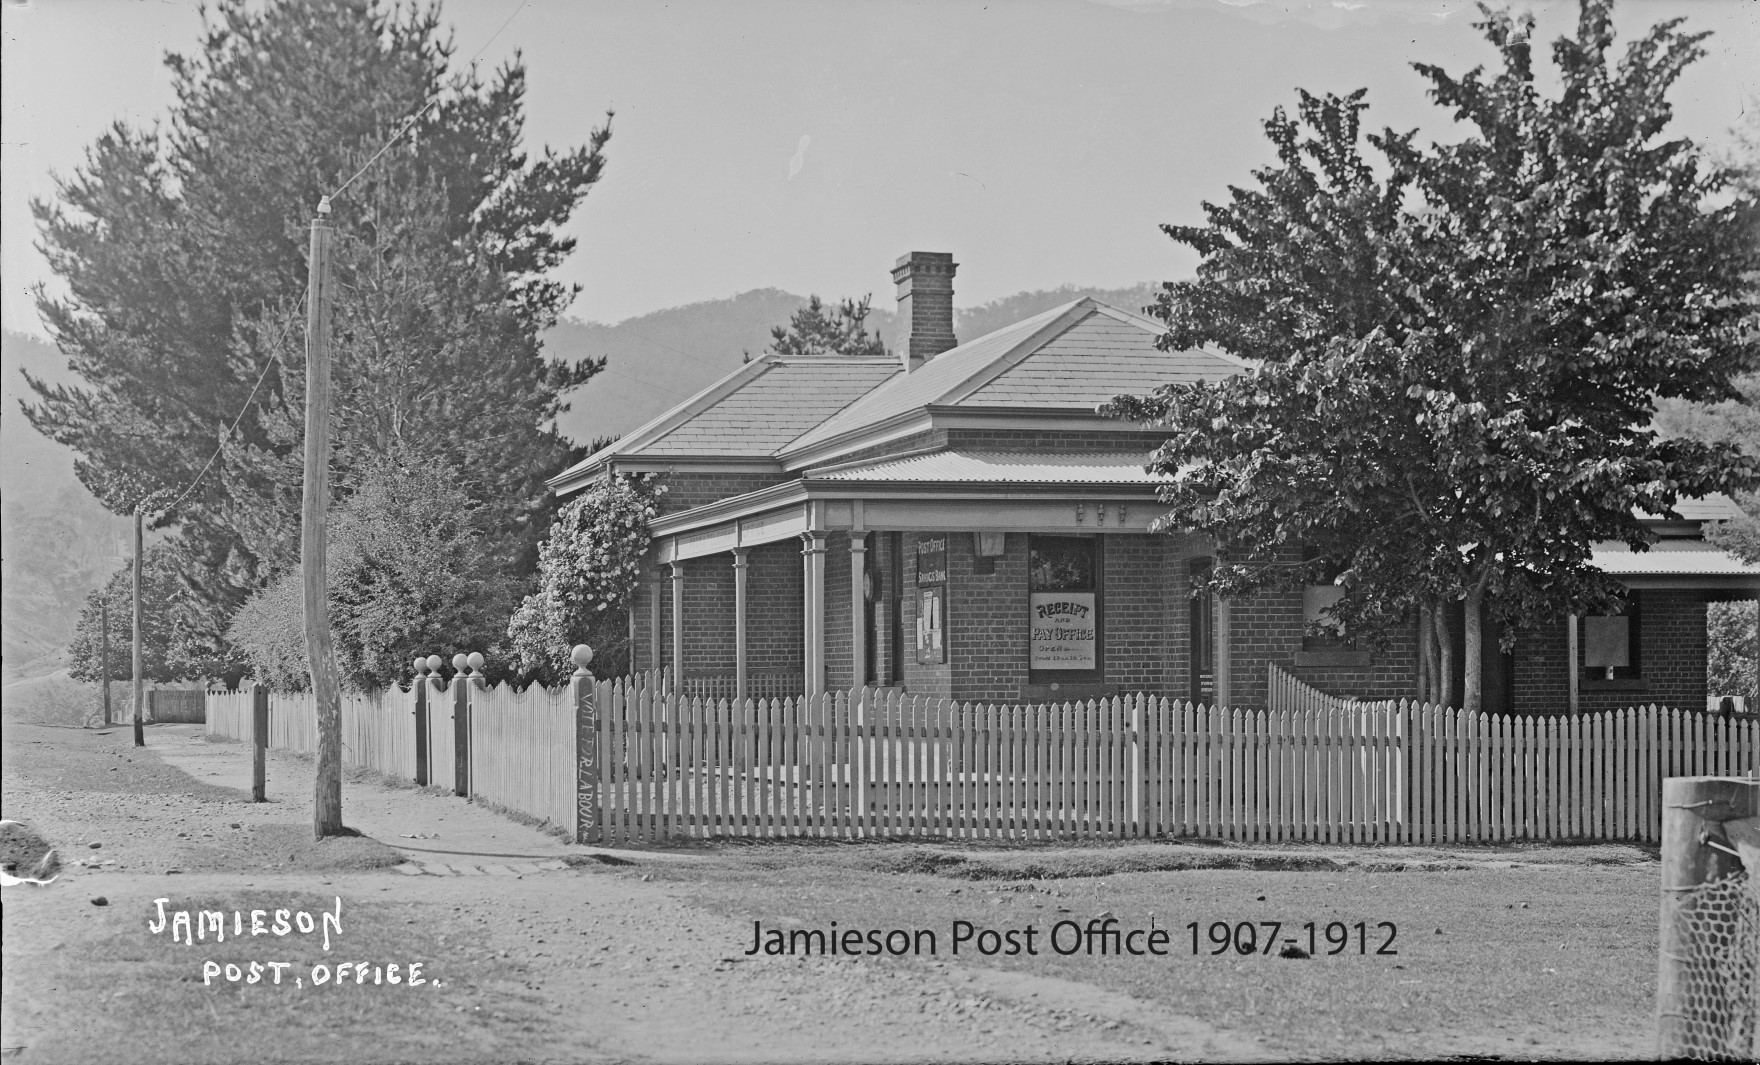 Post Office Jamieson 1907-1912